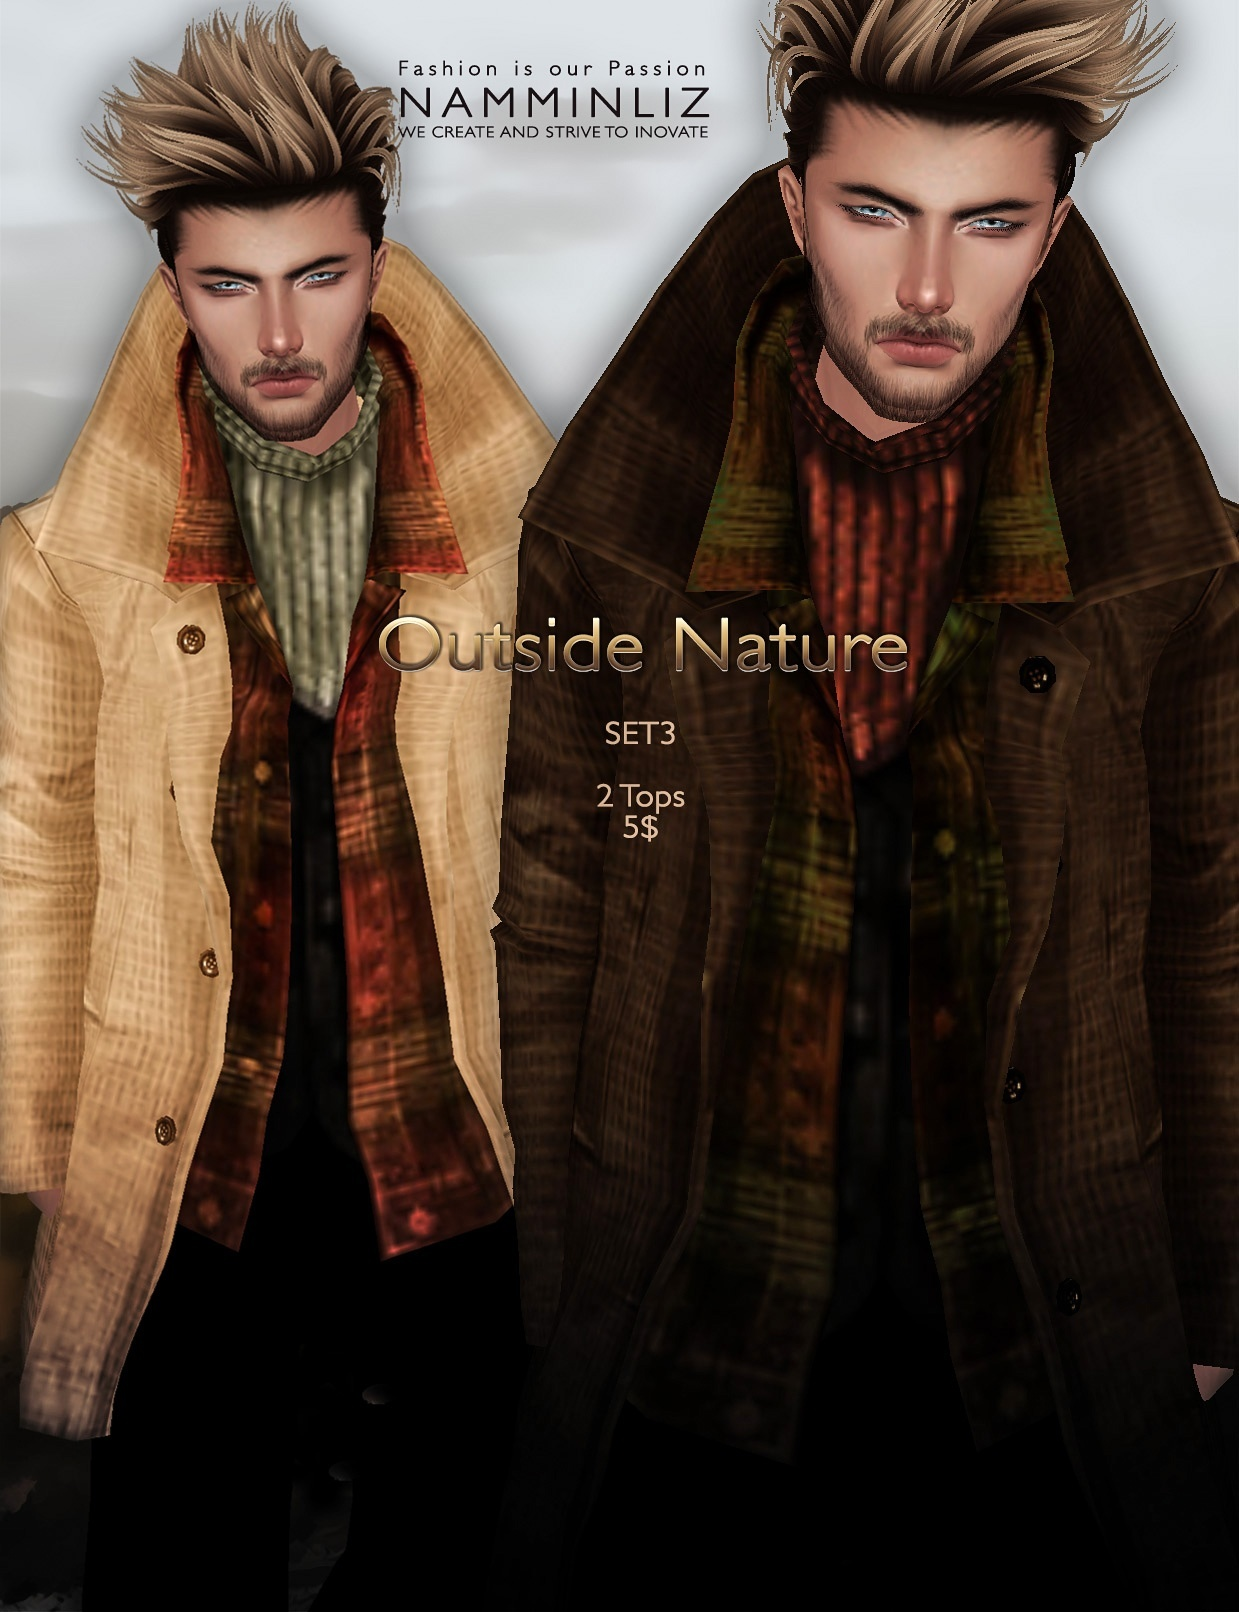 Outside Nature 3 SET imvu JPG Textures 2Tops